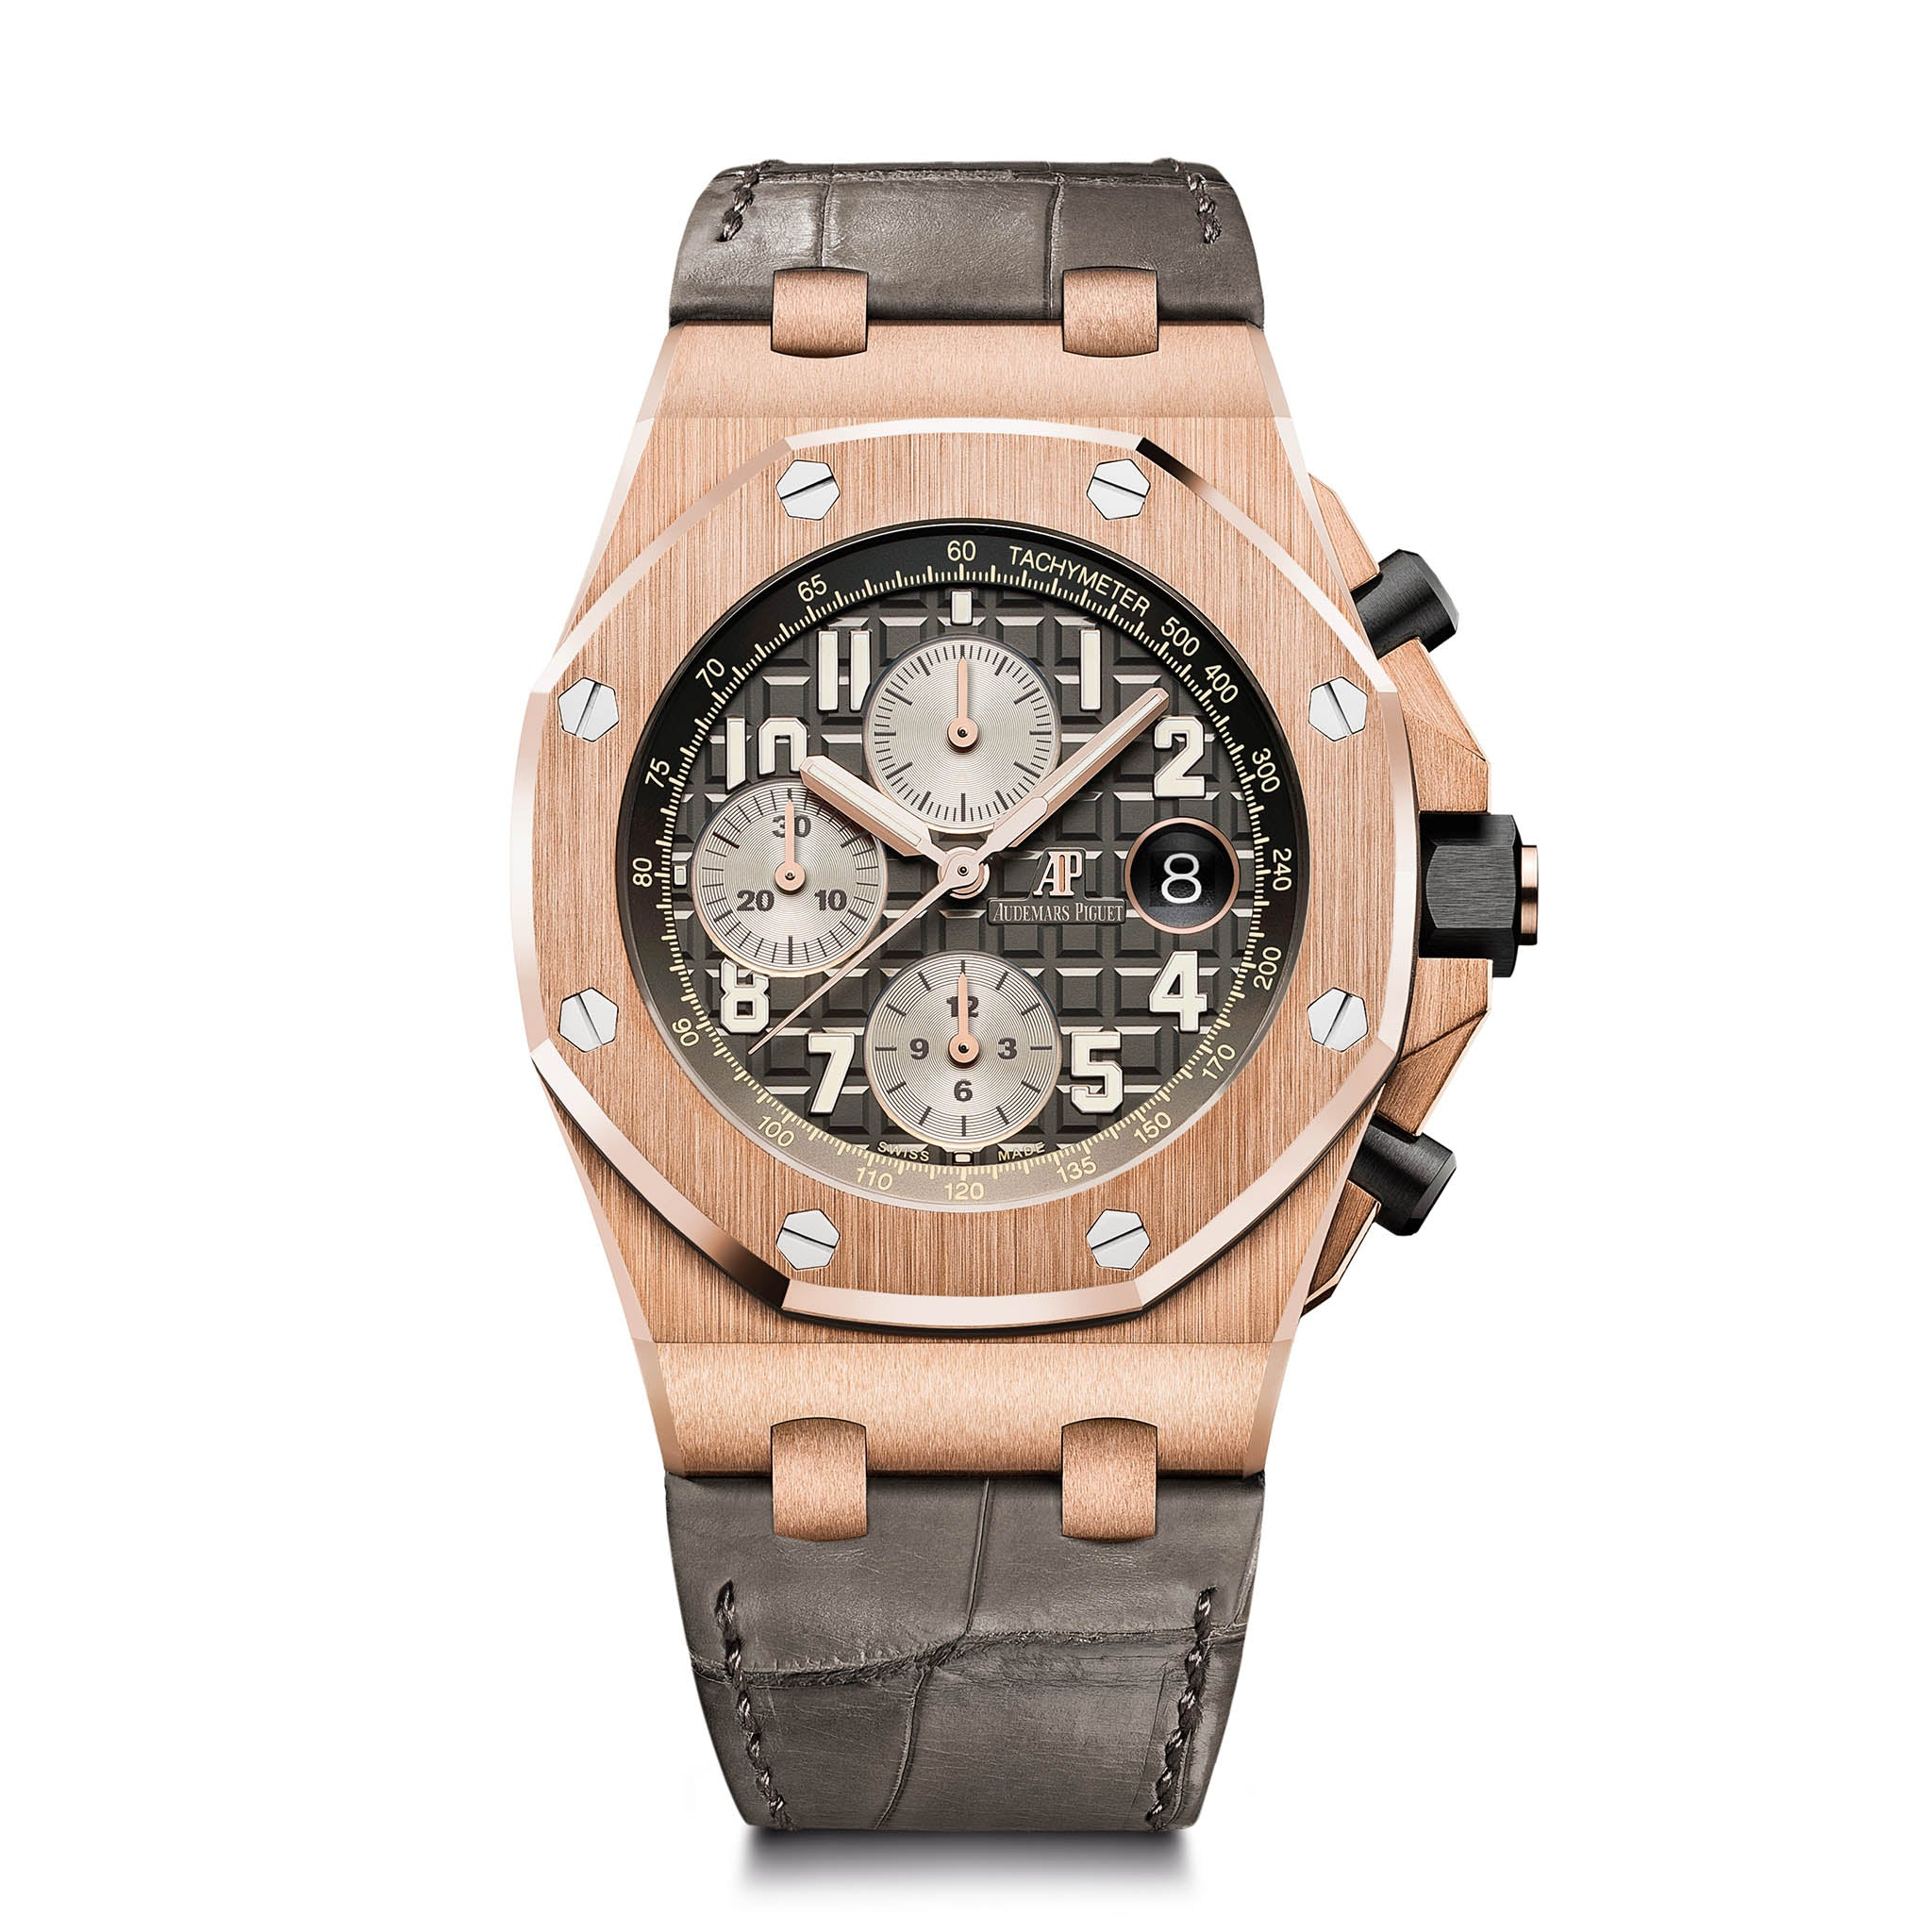 Royal Oak Offshore Chronograph 26470OR.OO.A125CR.01 - Audemars Piguet